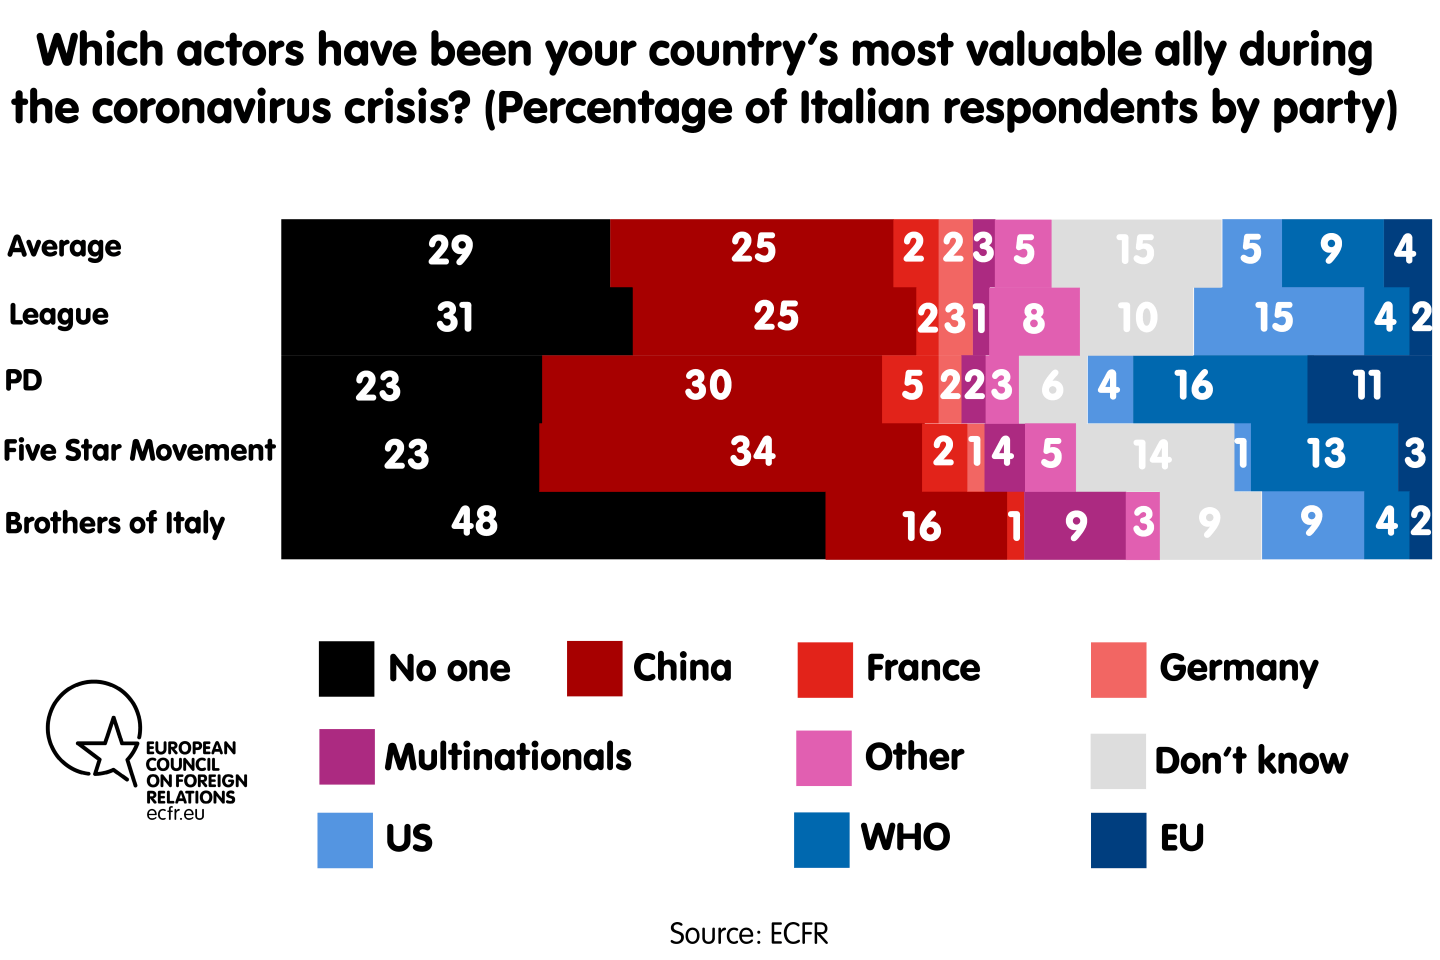 Which actors have been your country's most valuable ally during the coronavirus crisis? By party